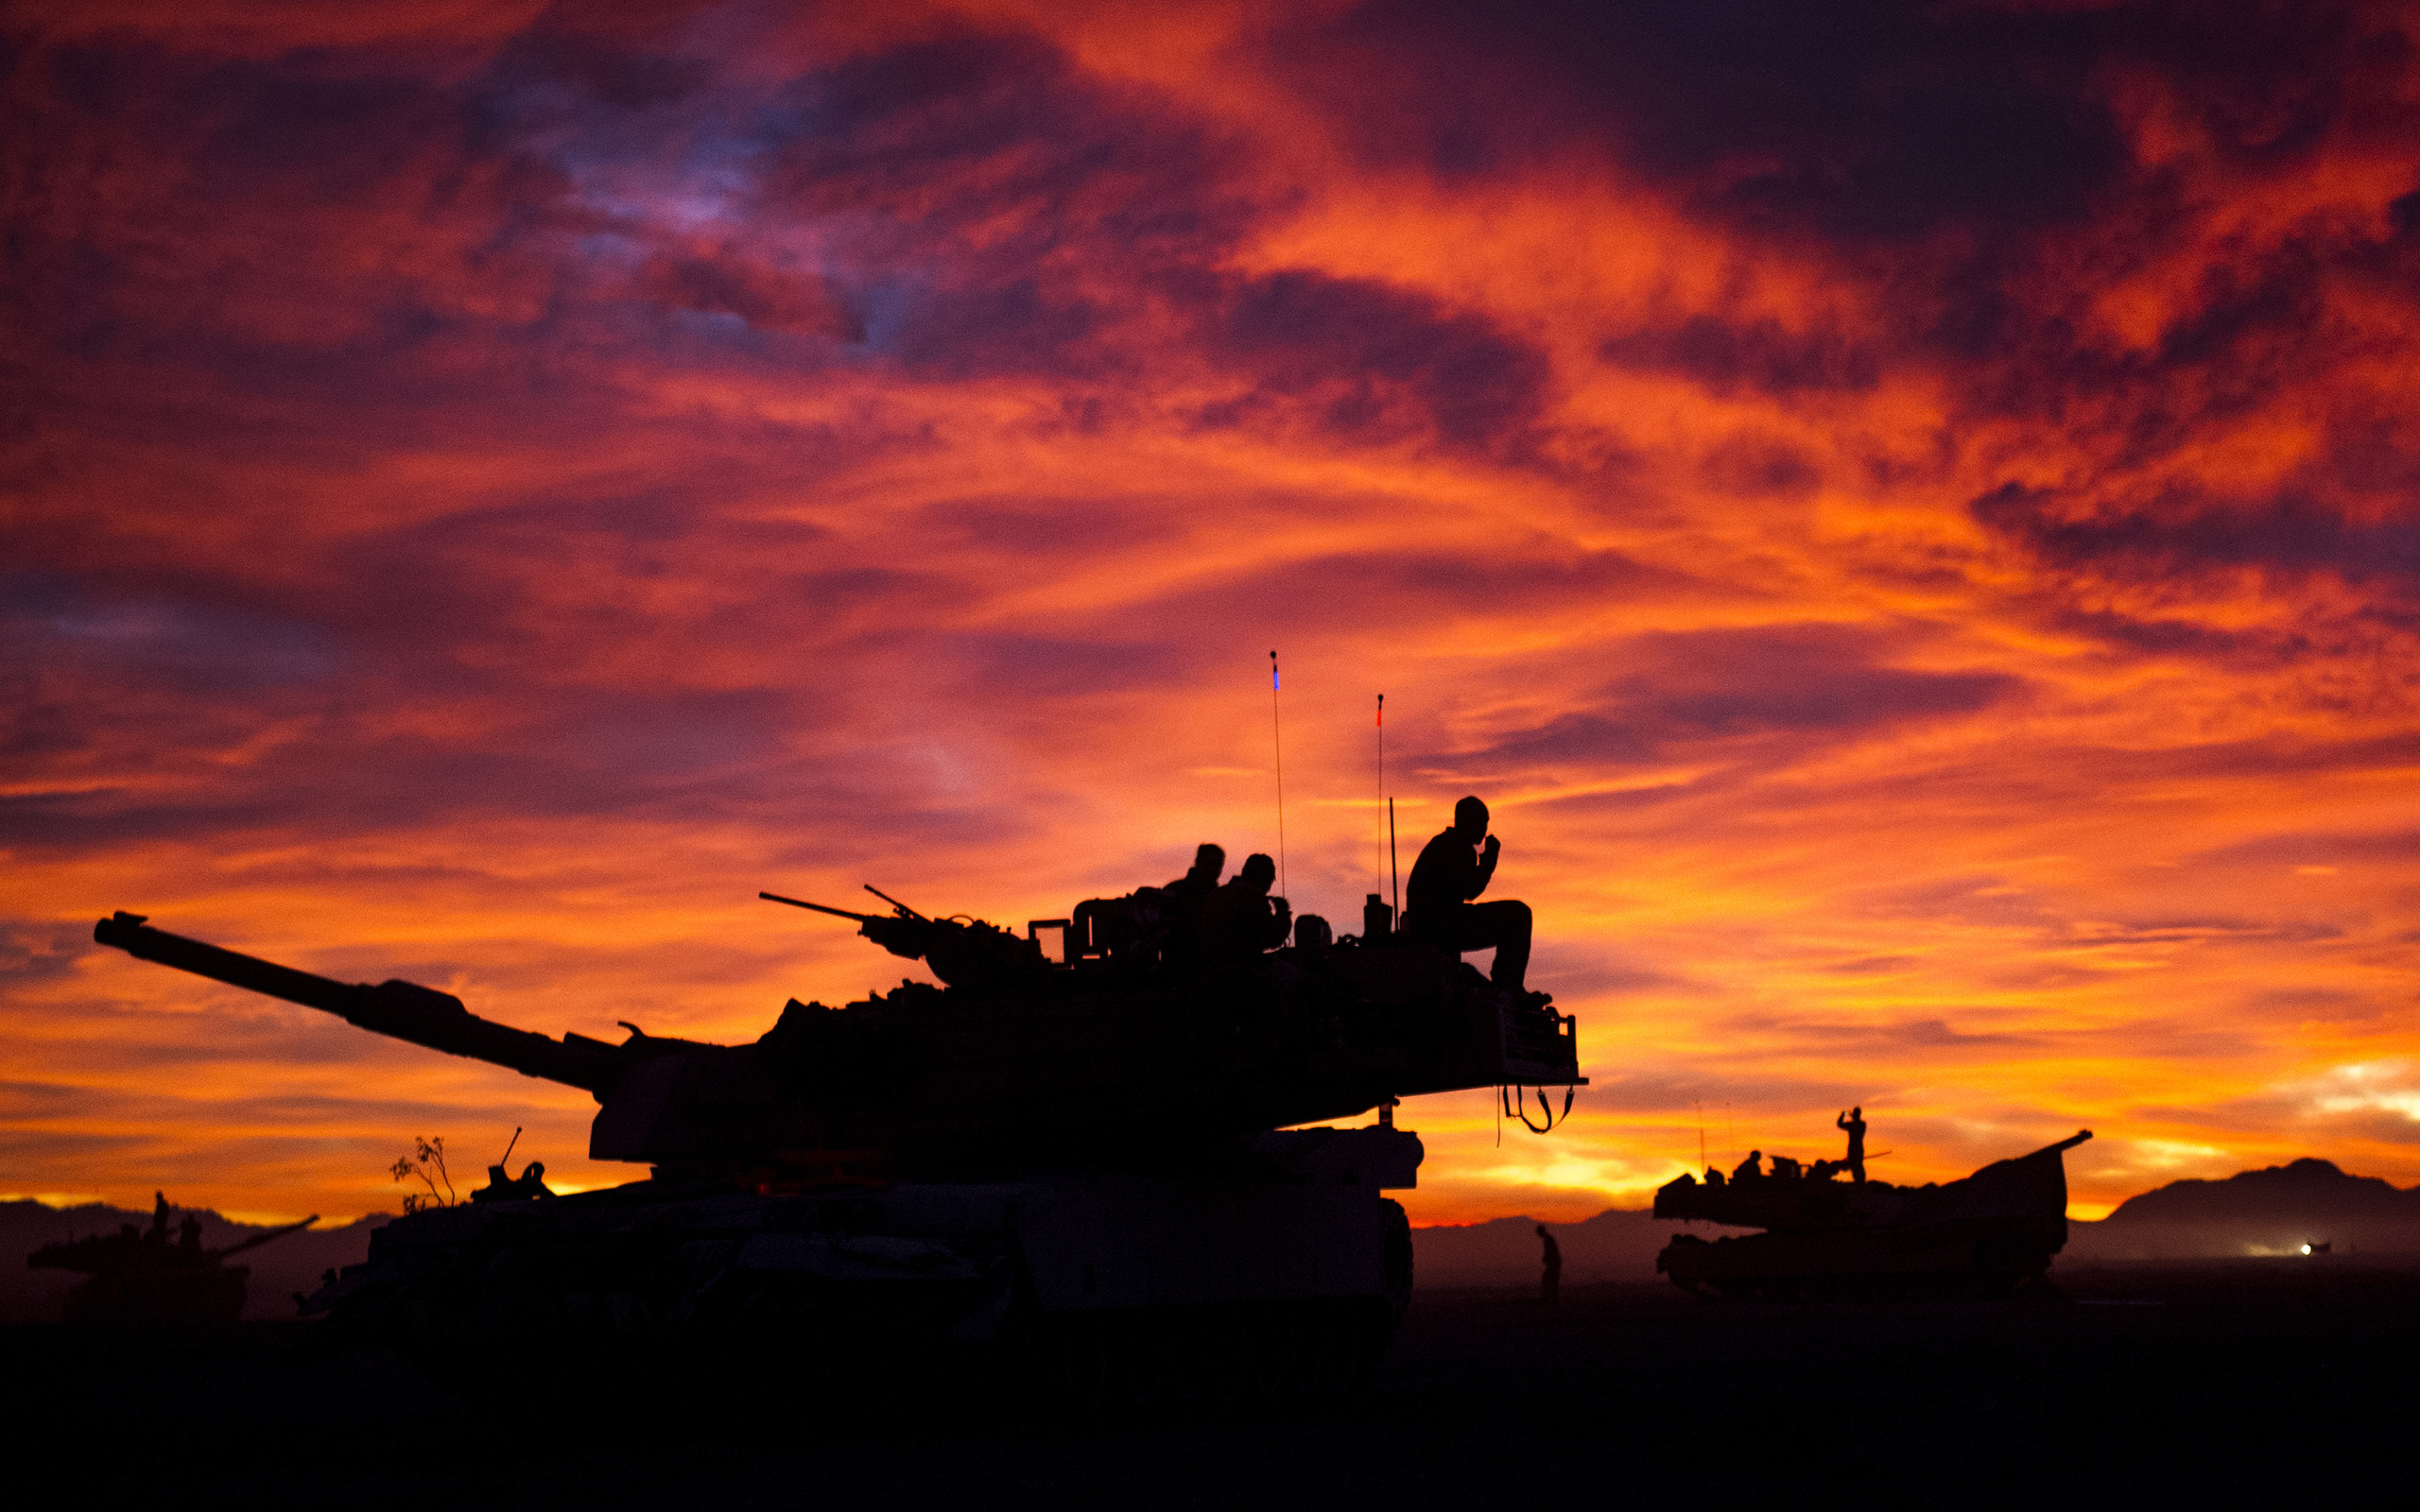 Marine corps screensavers and wallpaper 57 images - Military screensavers wallpapers ...